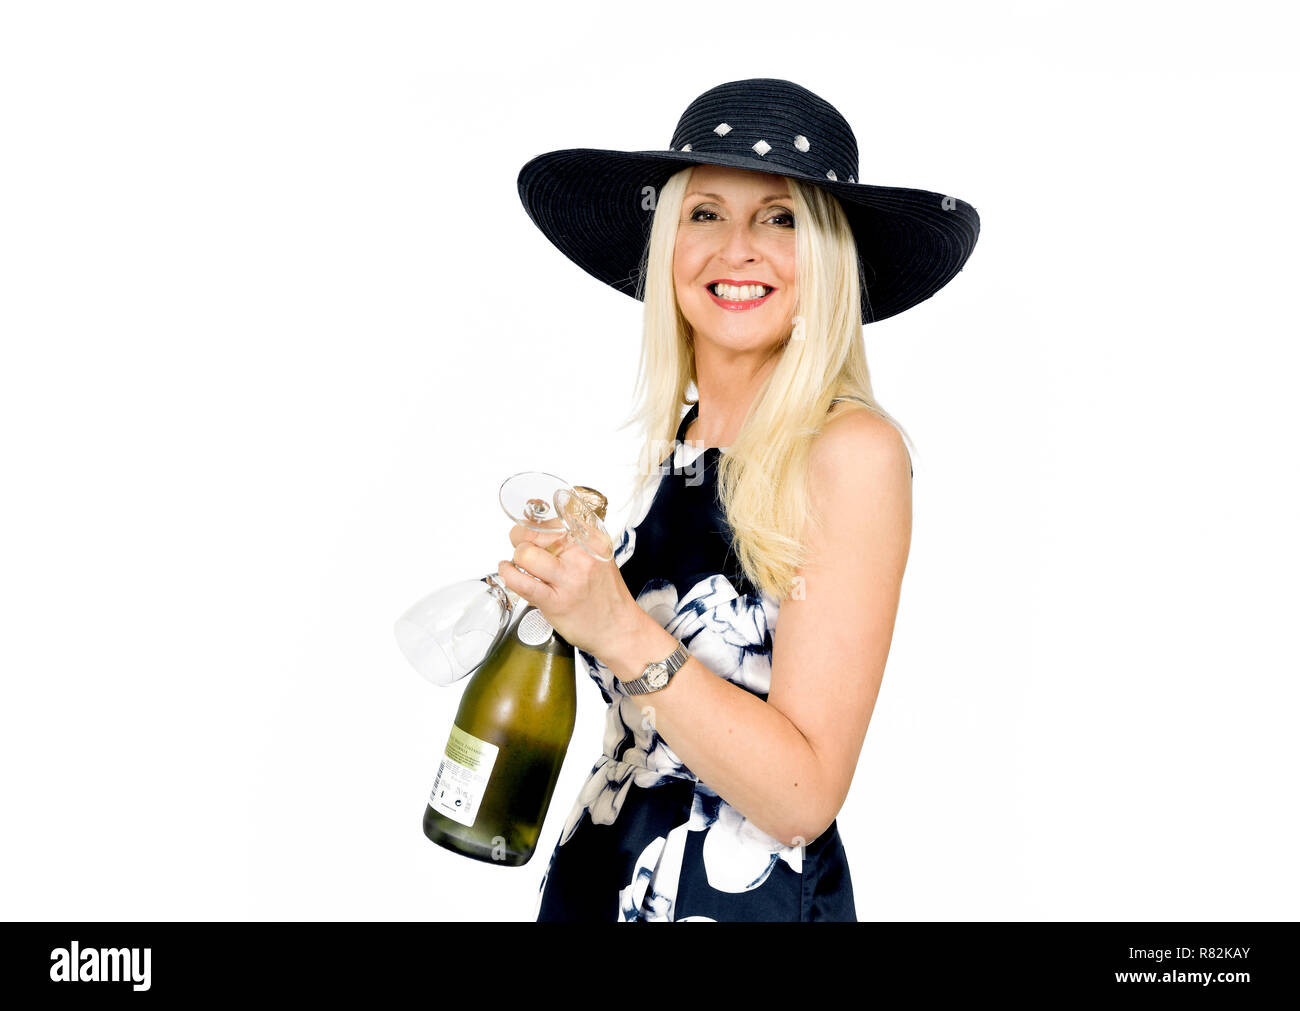 Attractive smiling woman in pretty dress holding a bottle of wine and two glasses, taken against white background - Stock Image